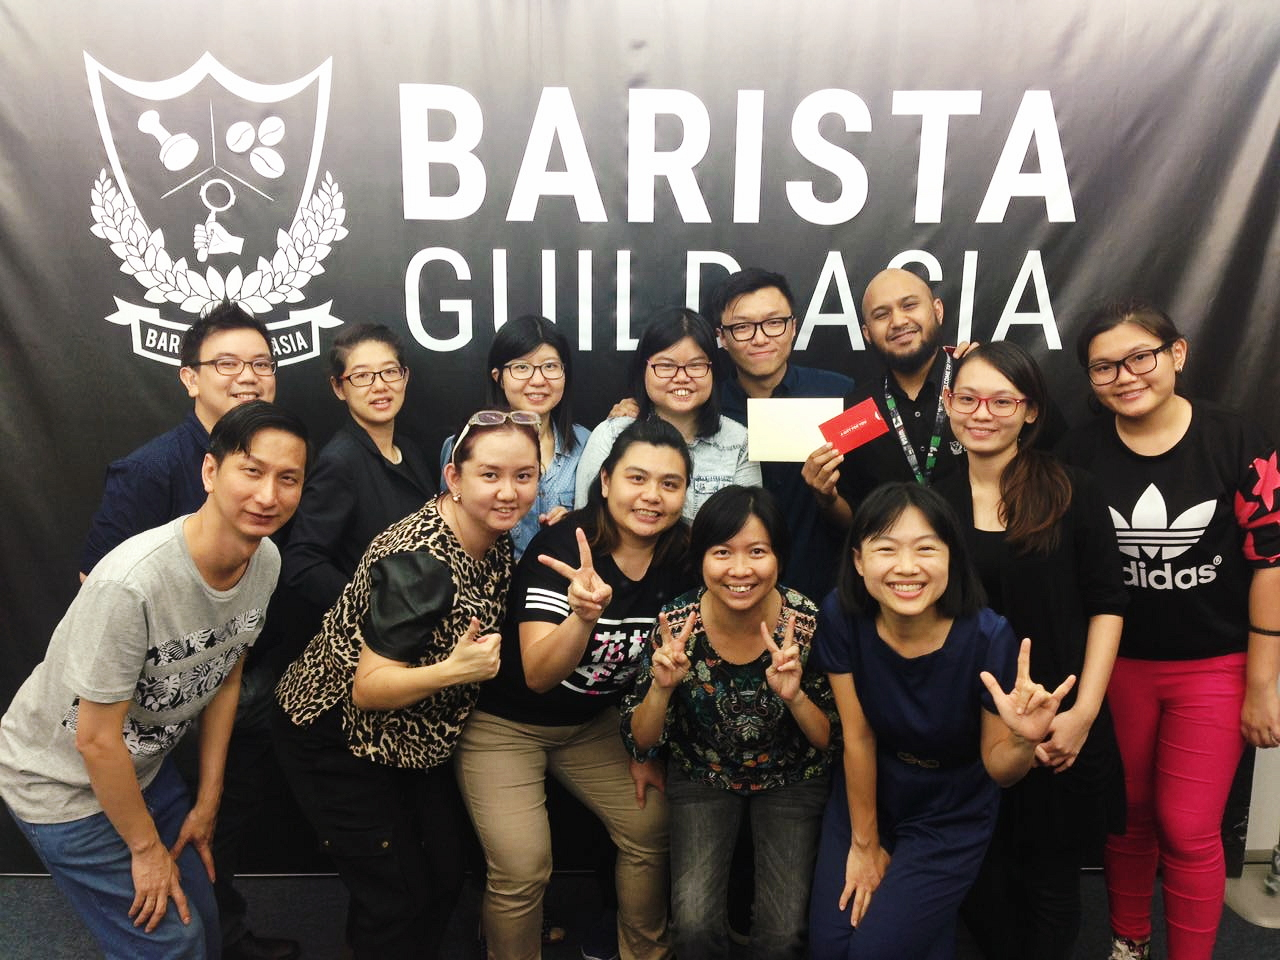 DEAF BARISTA WORKSHOP WITH DEAF BOLEH!  Working with people from different walks of life, communities and abilities to take up barista as a vocation is a very delightful experience. Especially when Deaf Boleh! is such a pleasure to work with!